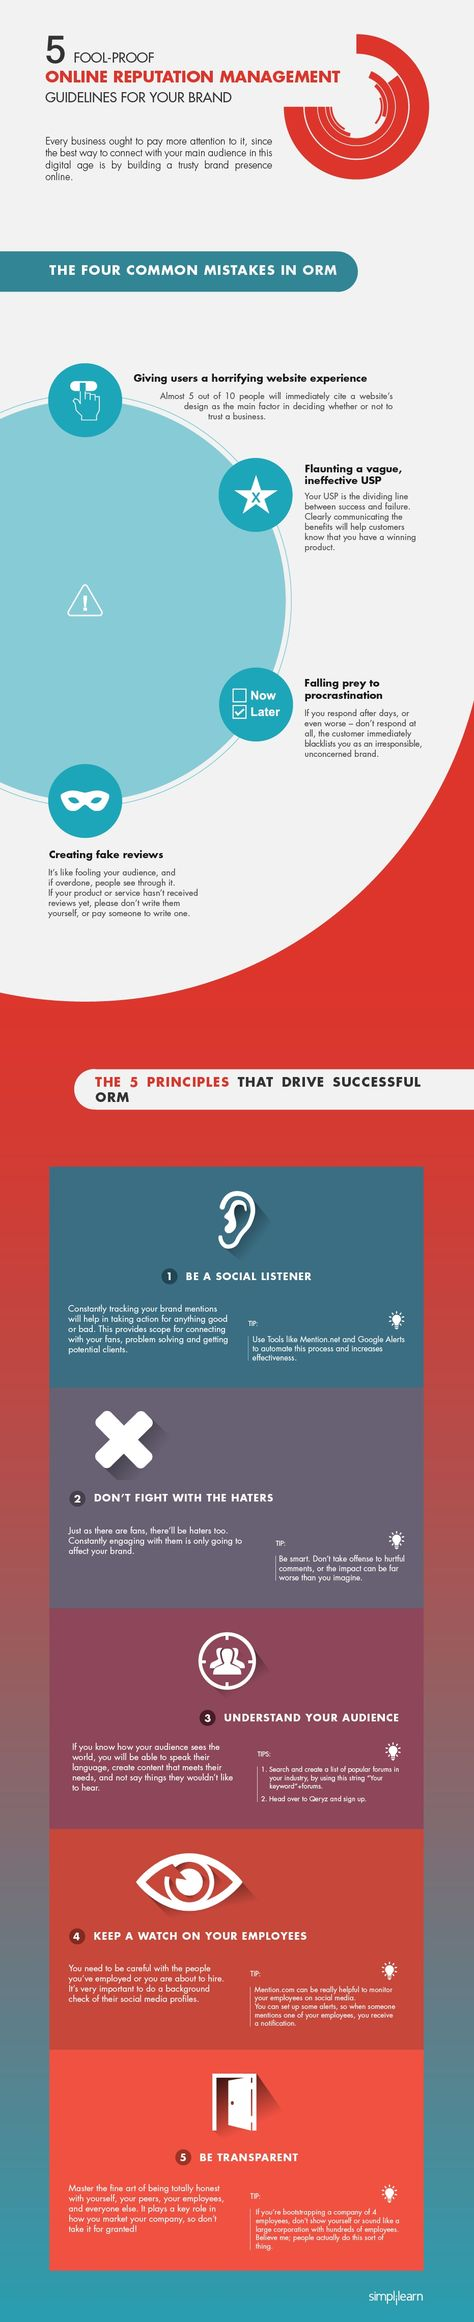 5 Fool-Proof Online Reputation Management Guidelines for Your Brand [Infographic]